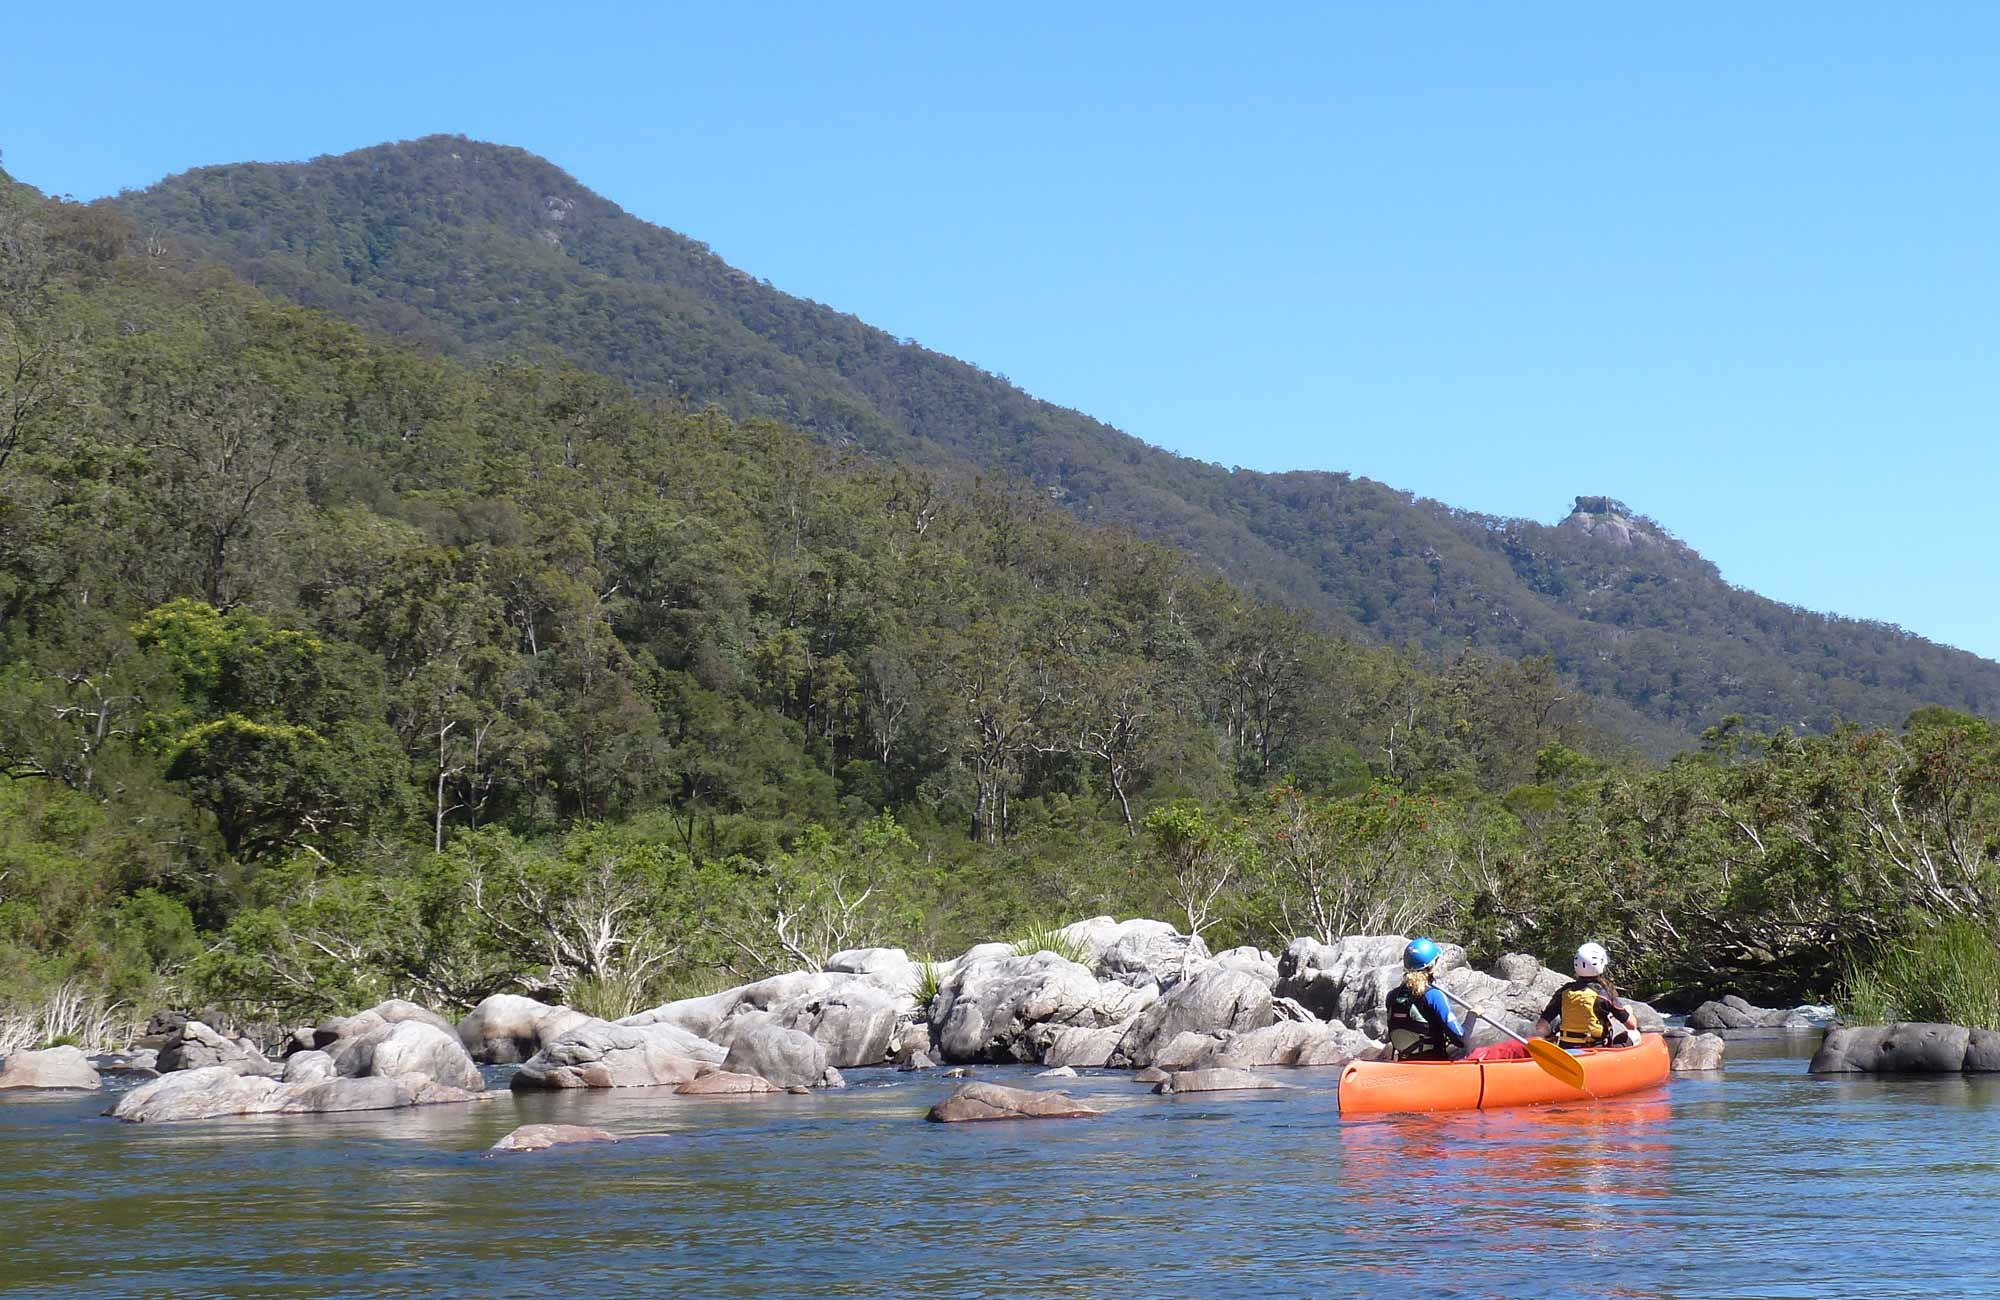 Canoeing, Nymboida National Partk. Photo: D Parkin